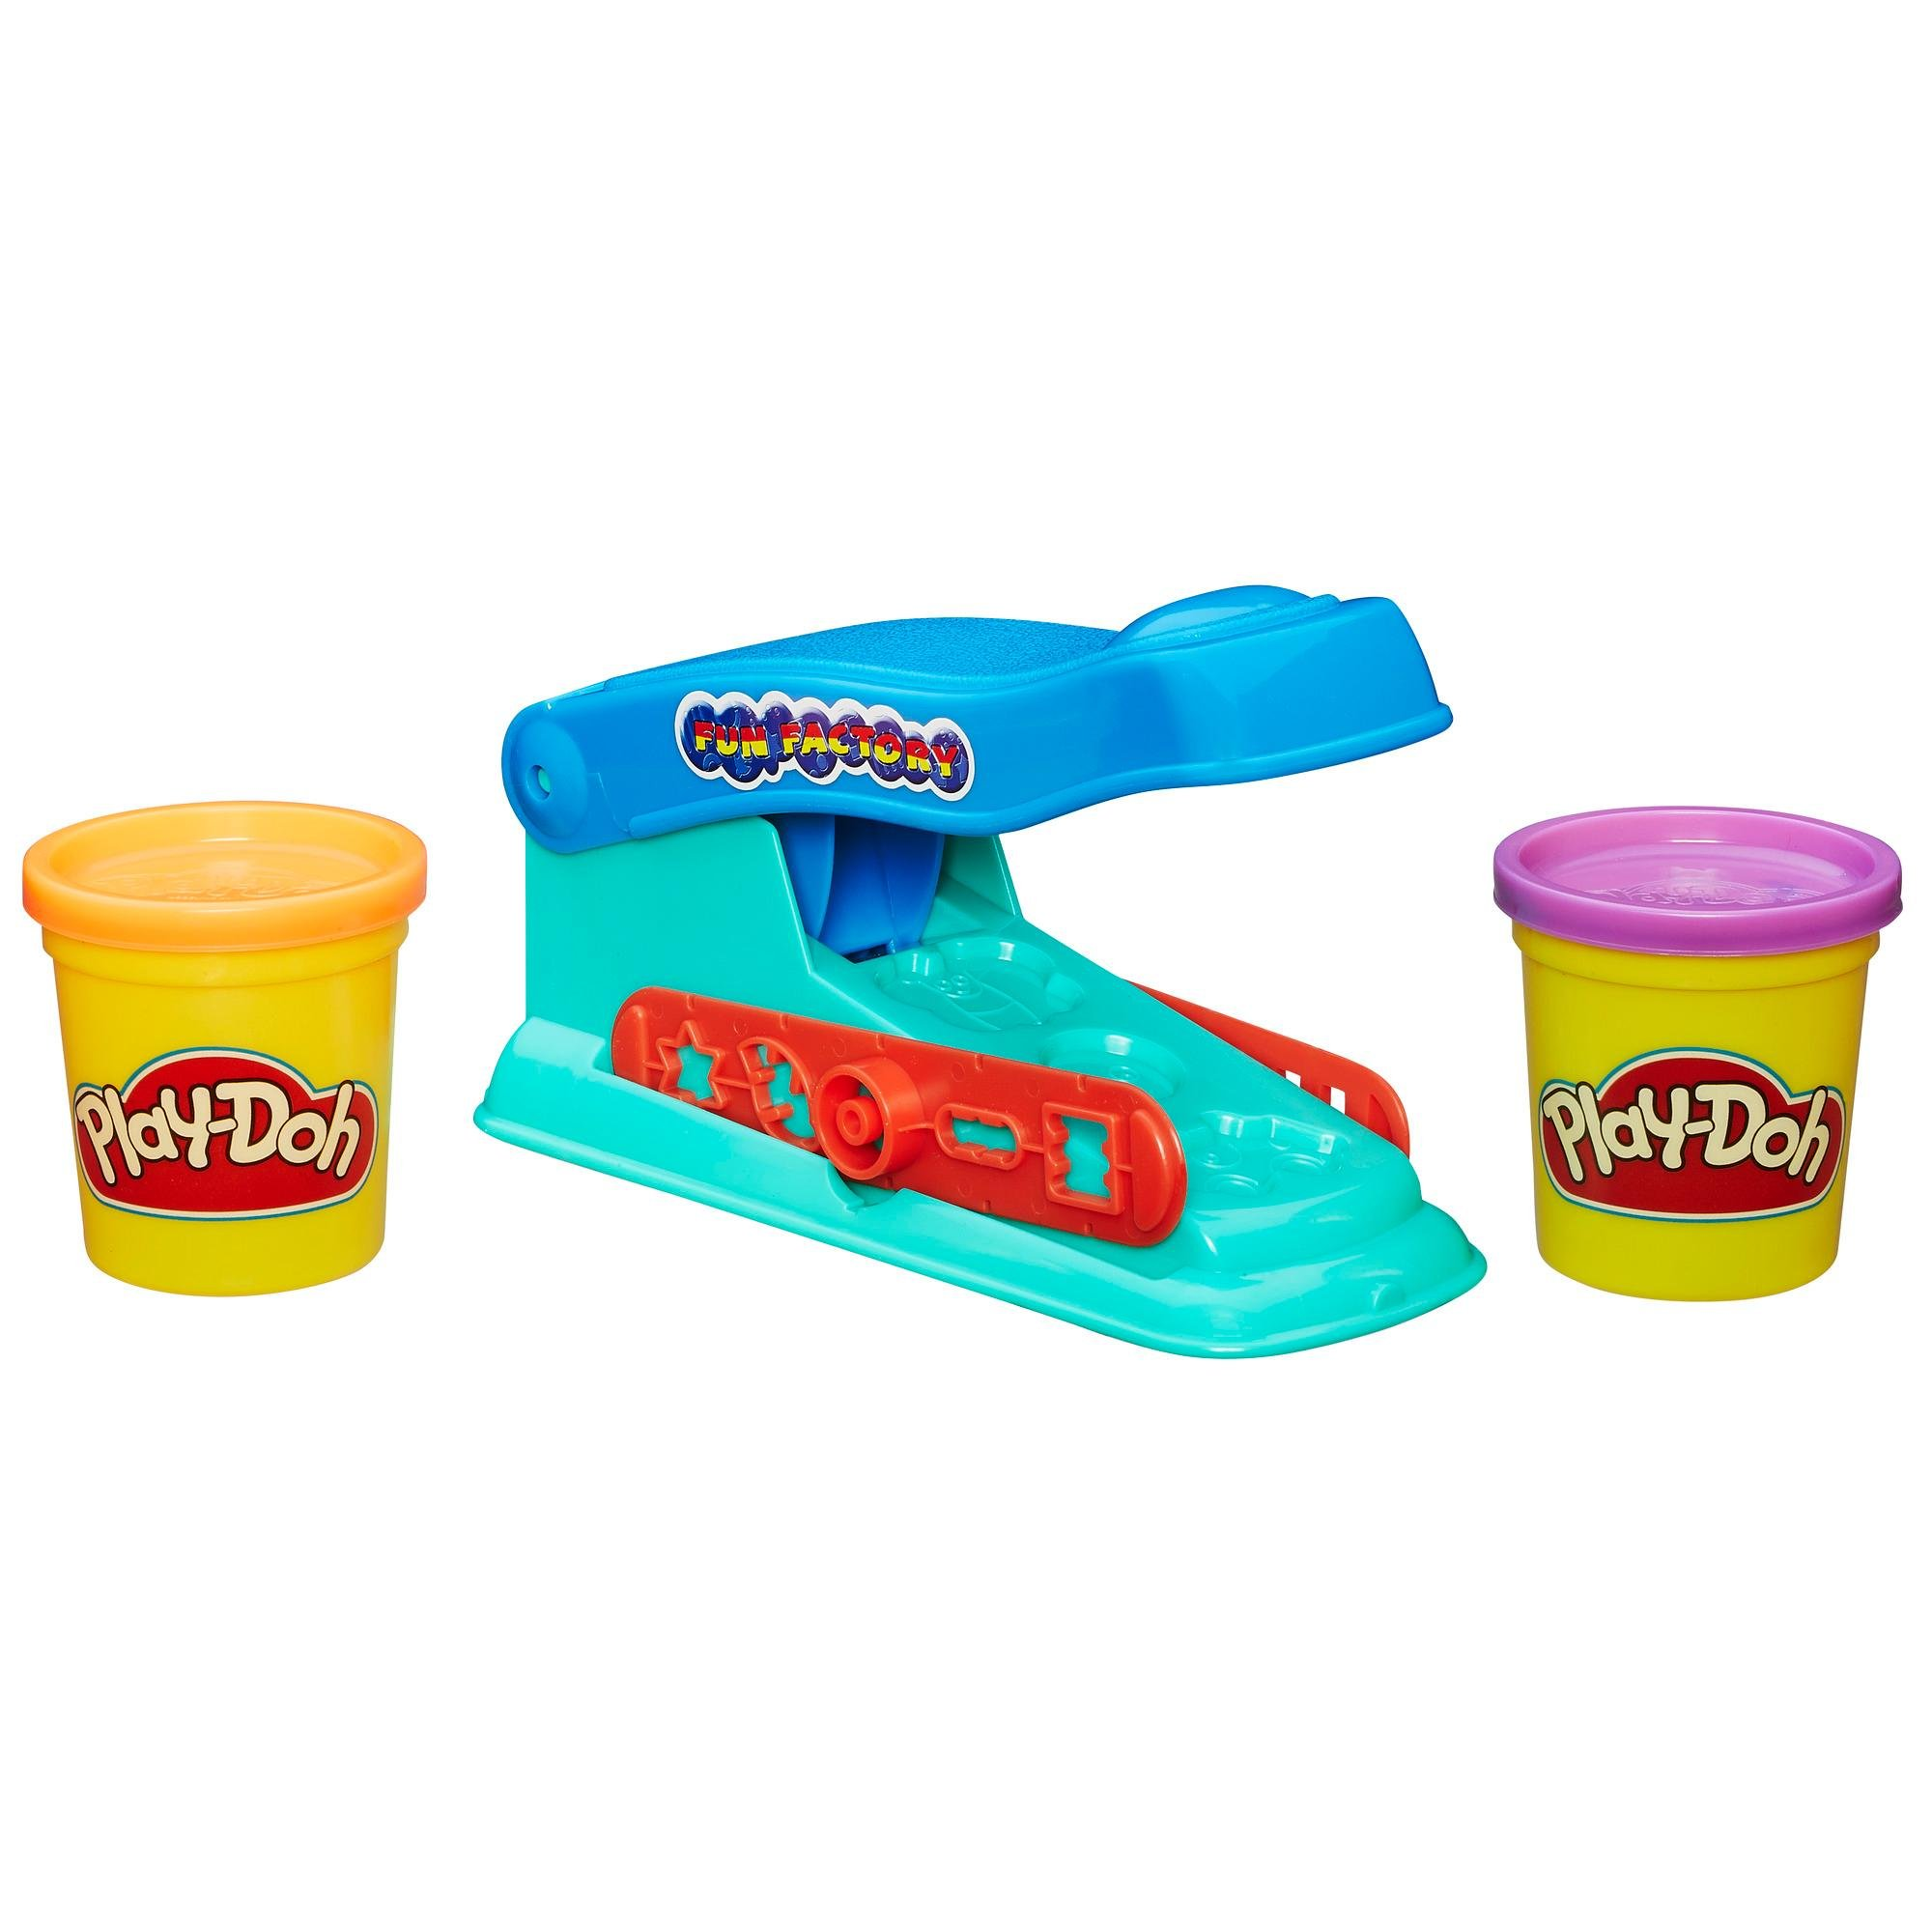 Play-Doh Fun Factory Set + Play-Doh Rainbow Starter Pack Bundle